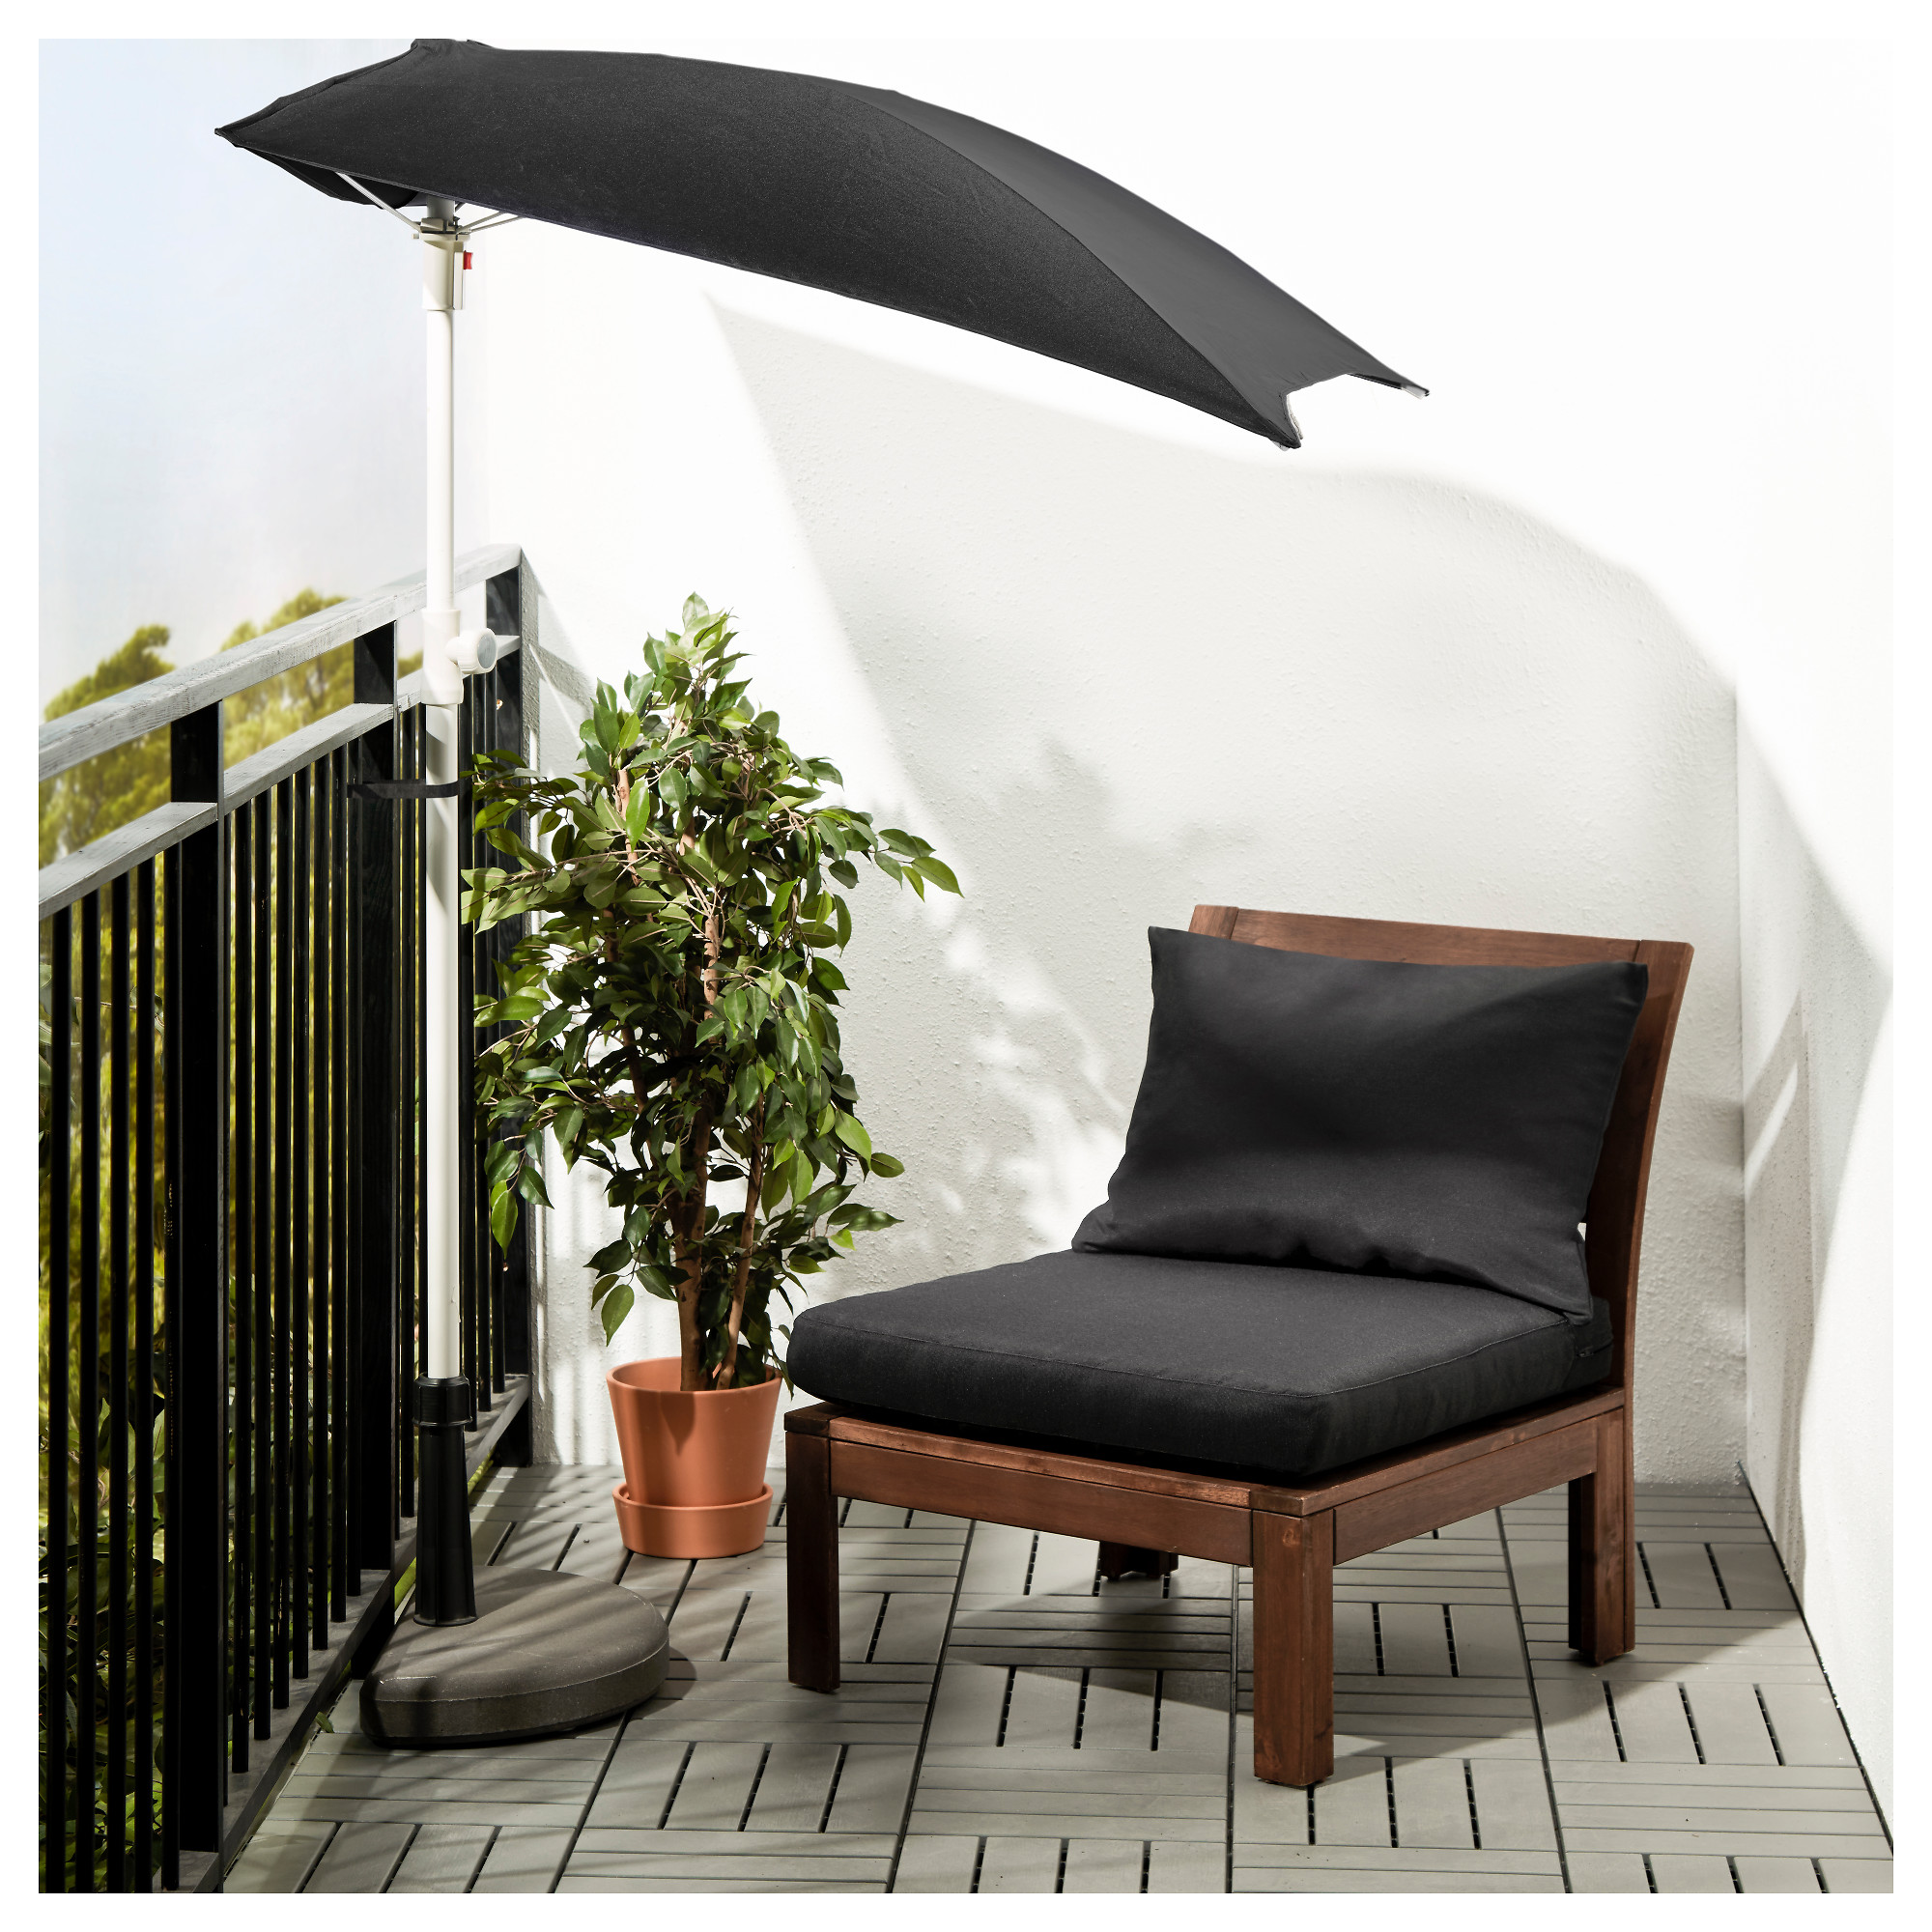 Applaro Easy Chair Outdoor Brown Stained Hallo Black Ikea Hong Kong And Macau